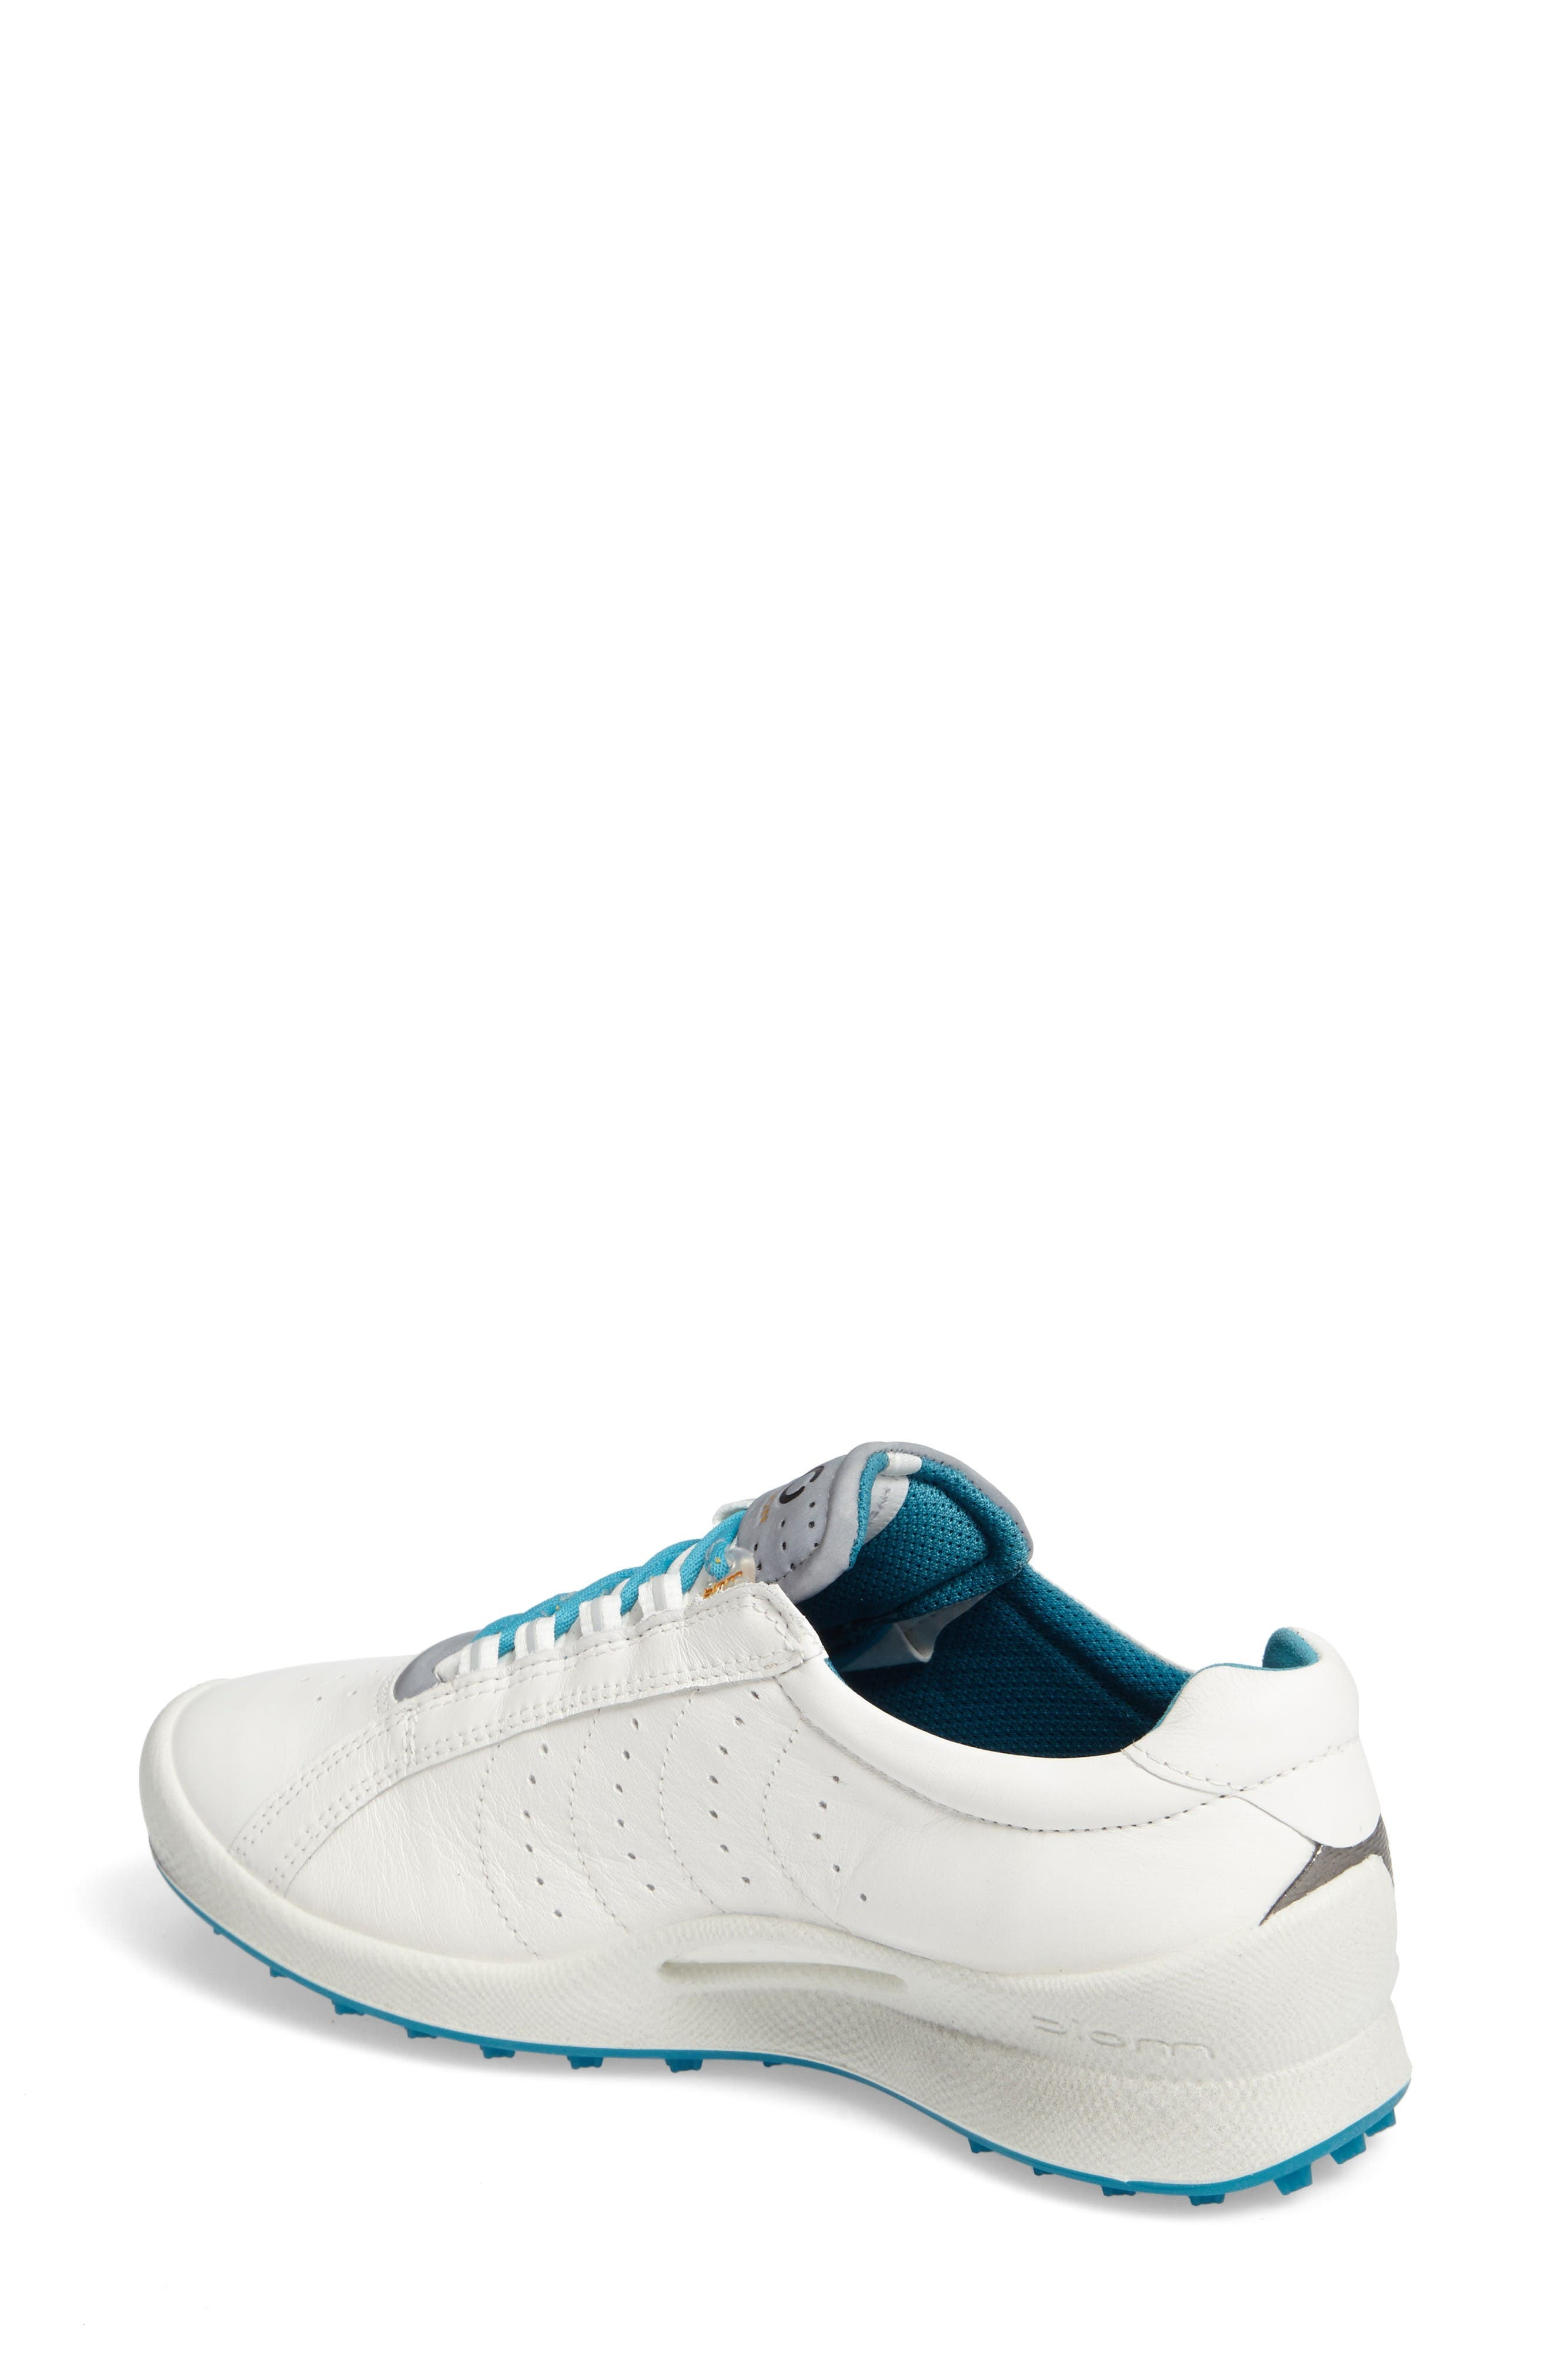 Biom 2 Waterproof Golf Shoe,                             Alternate thumbnail 2, color,                             White